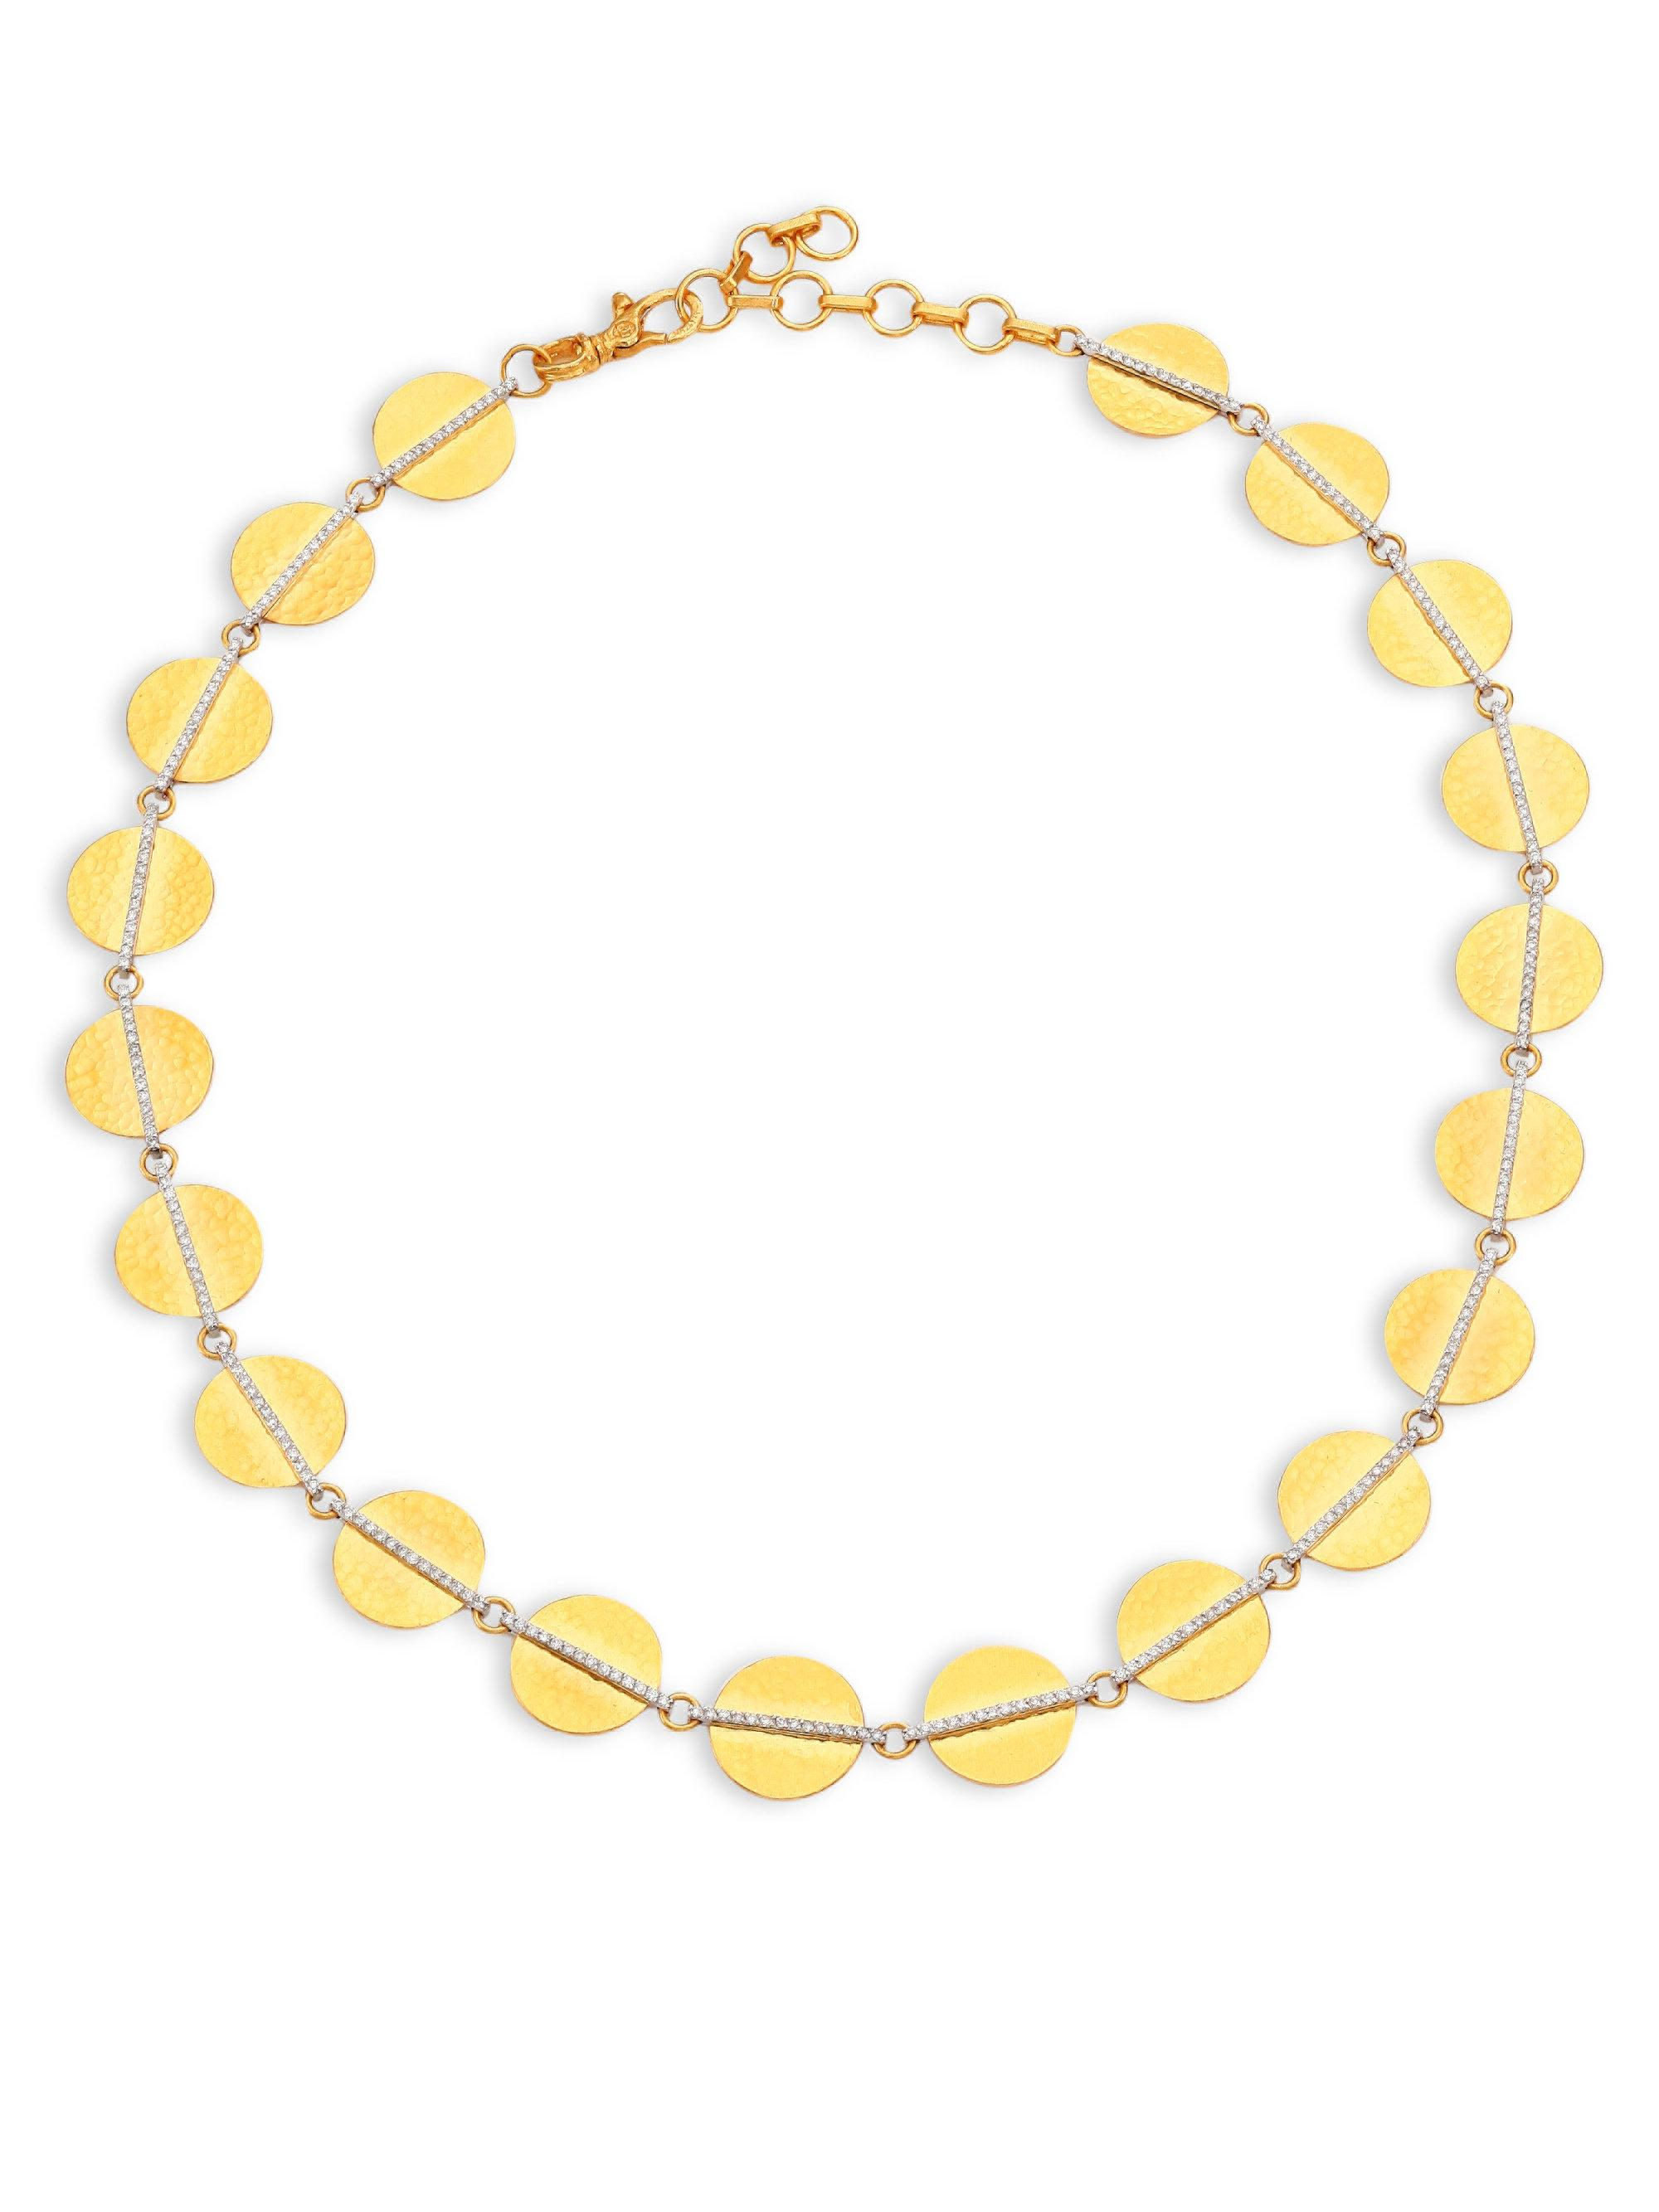 silver women s jewelry necklace hoopla gold gurhan yellow